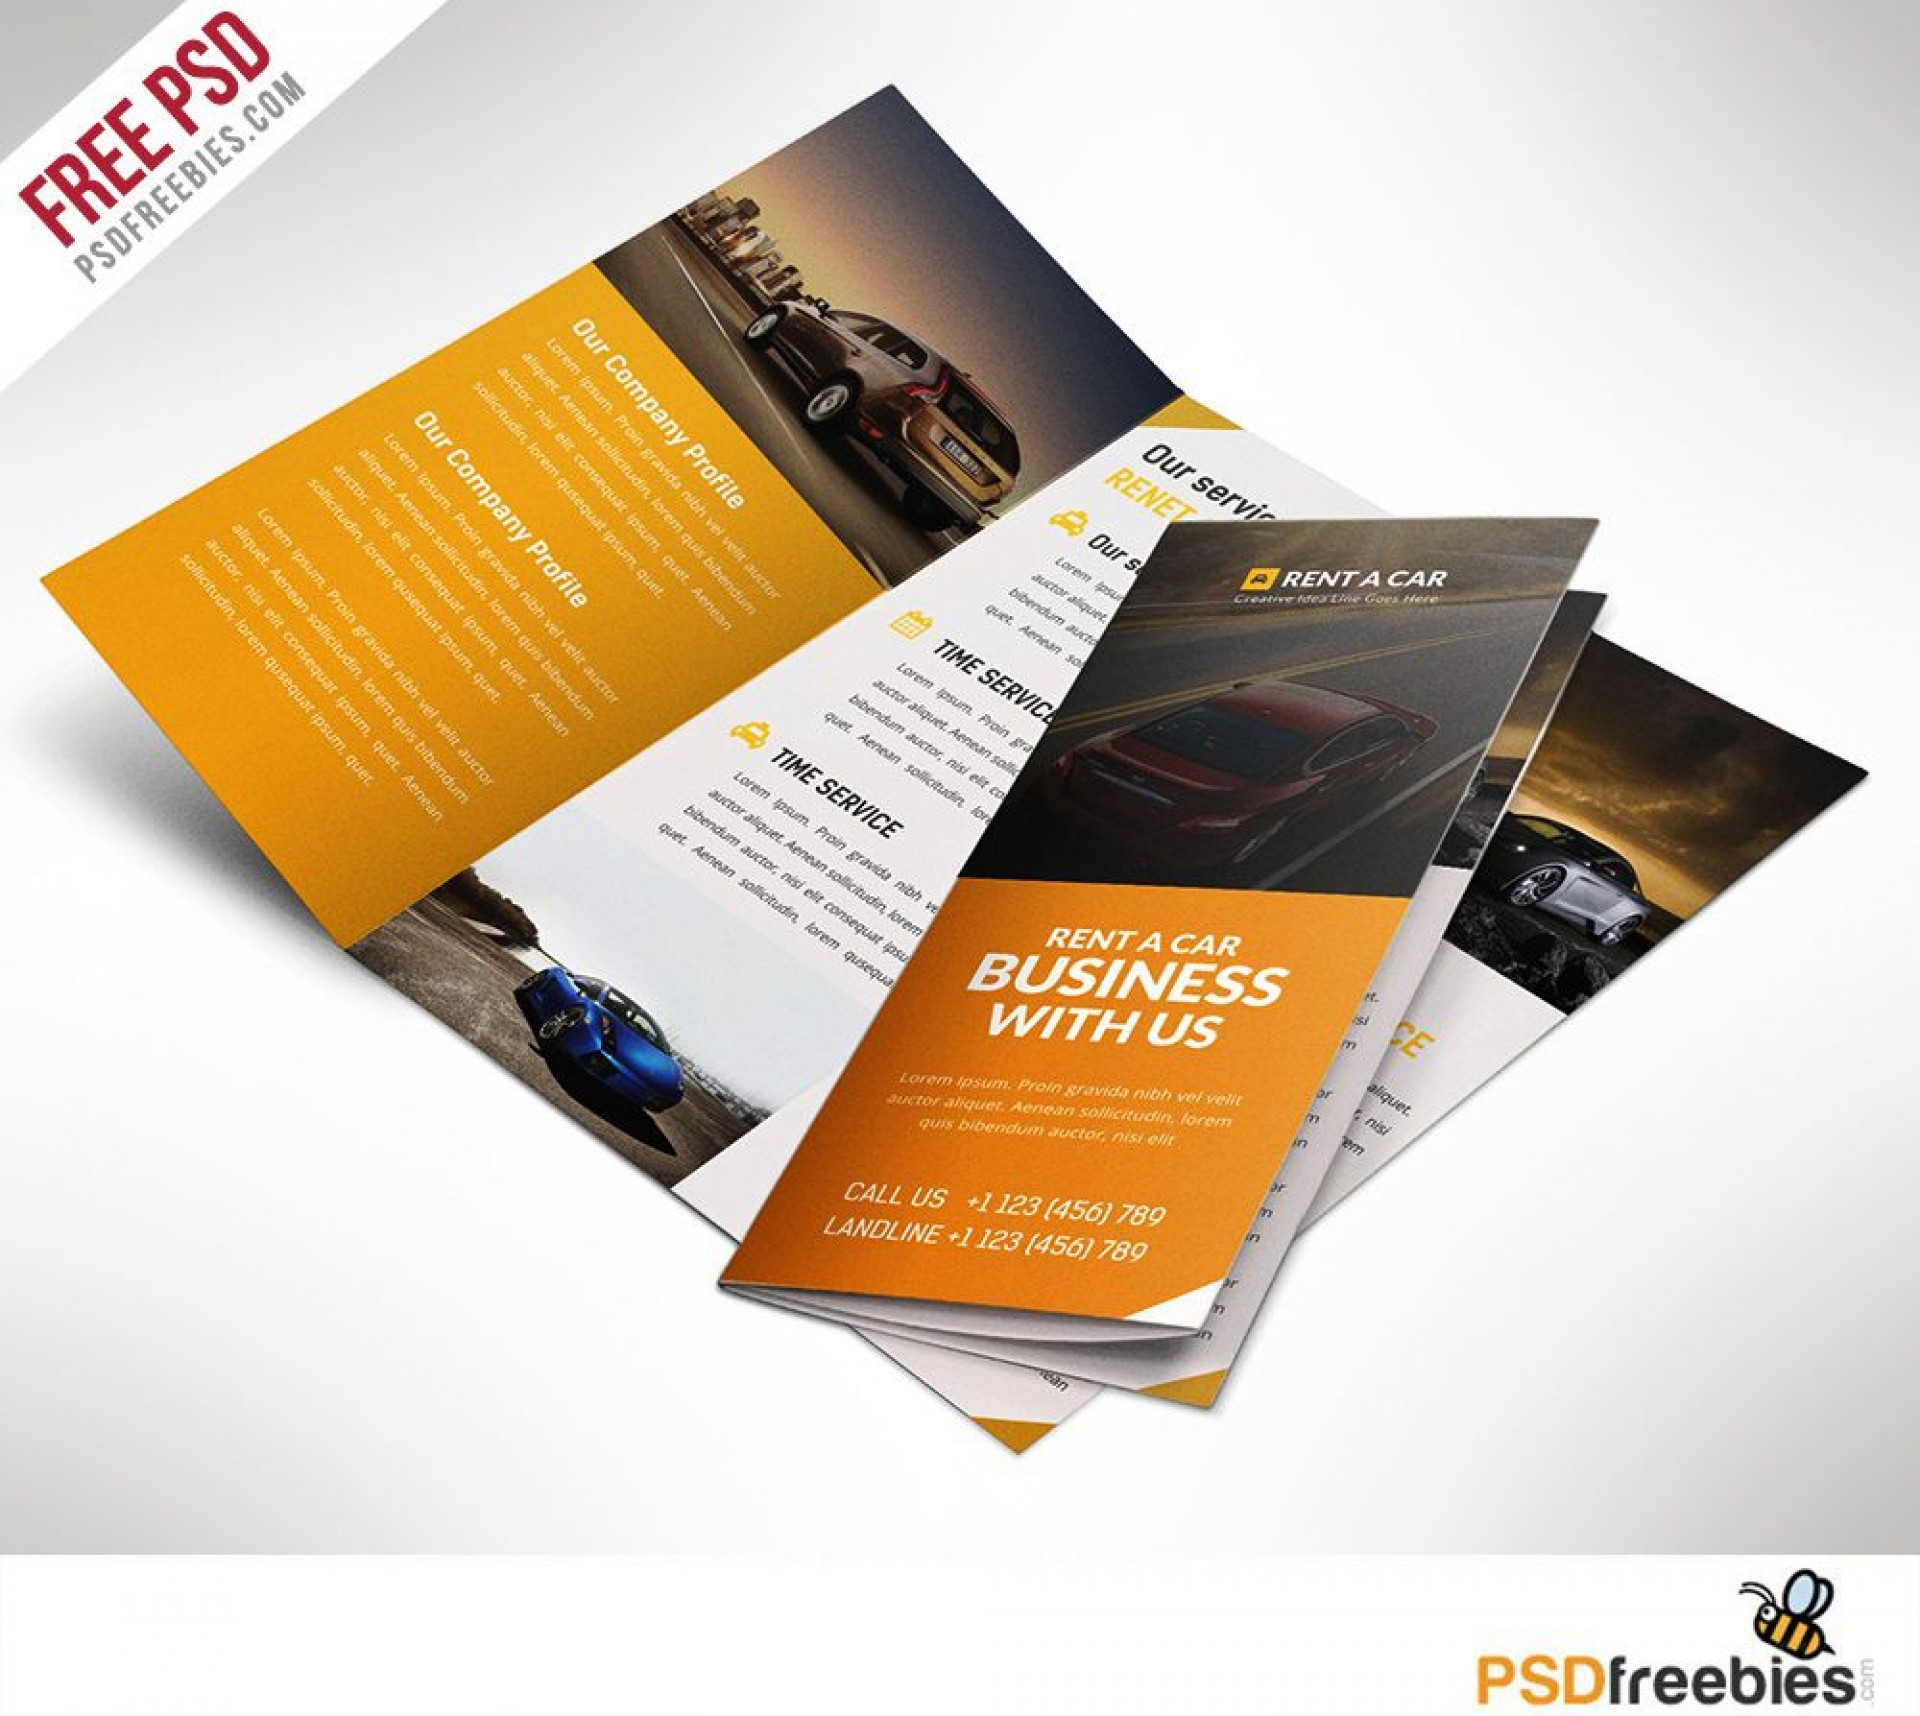 003 Fascinating Adobe Photoshop Brochure Template Free Download Picture 1920